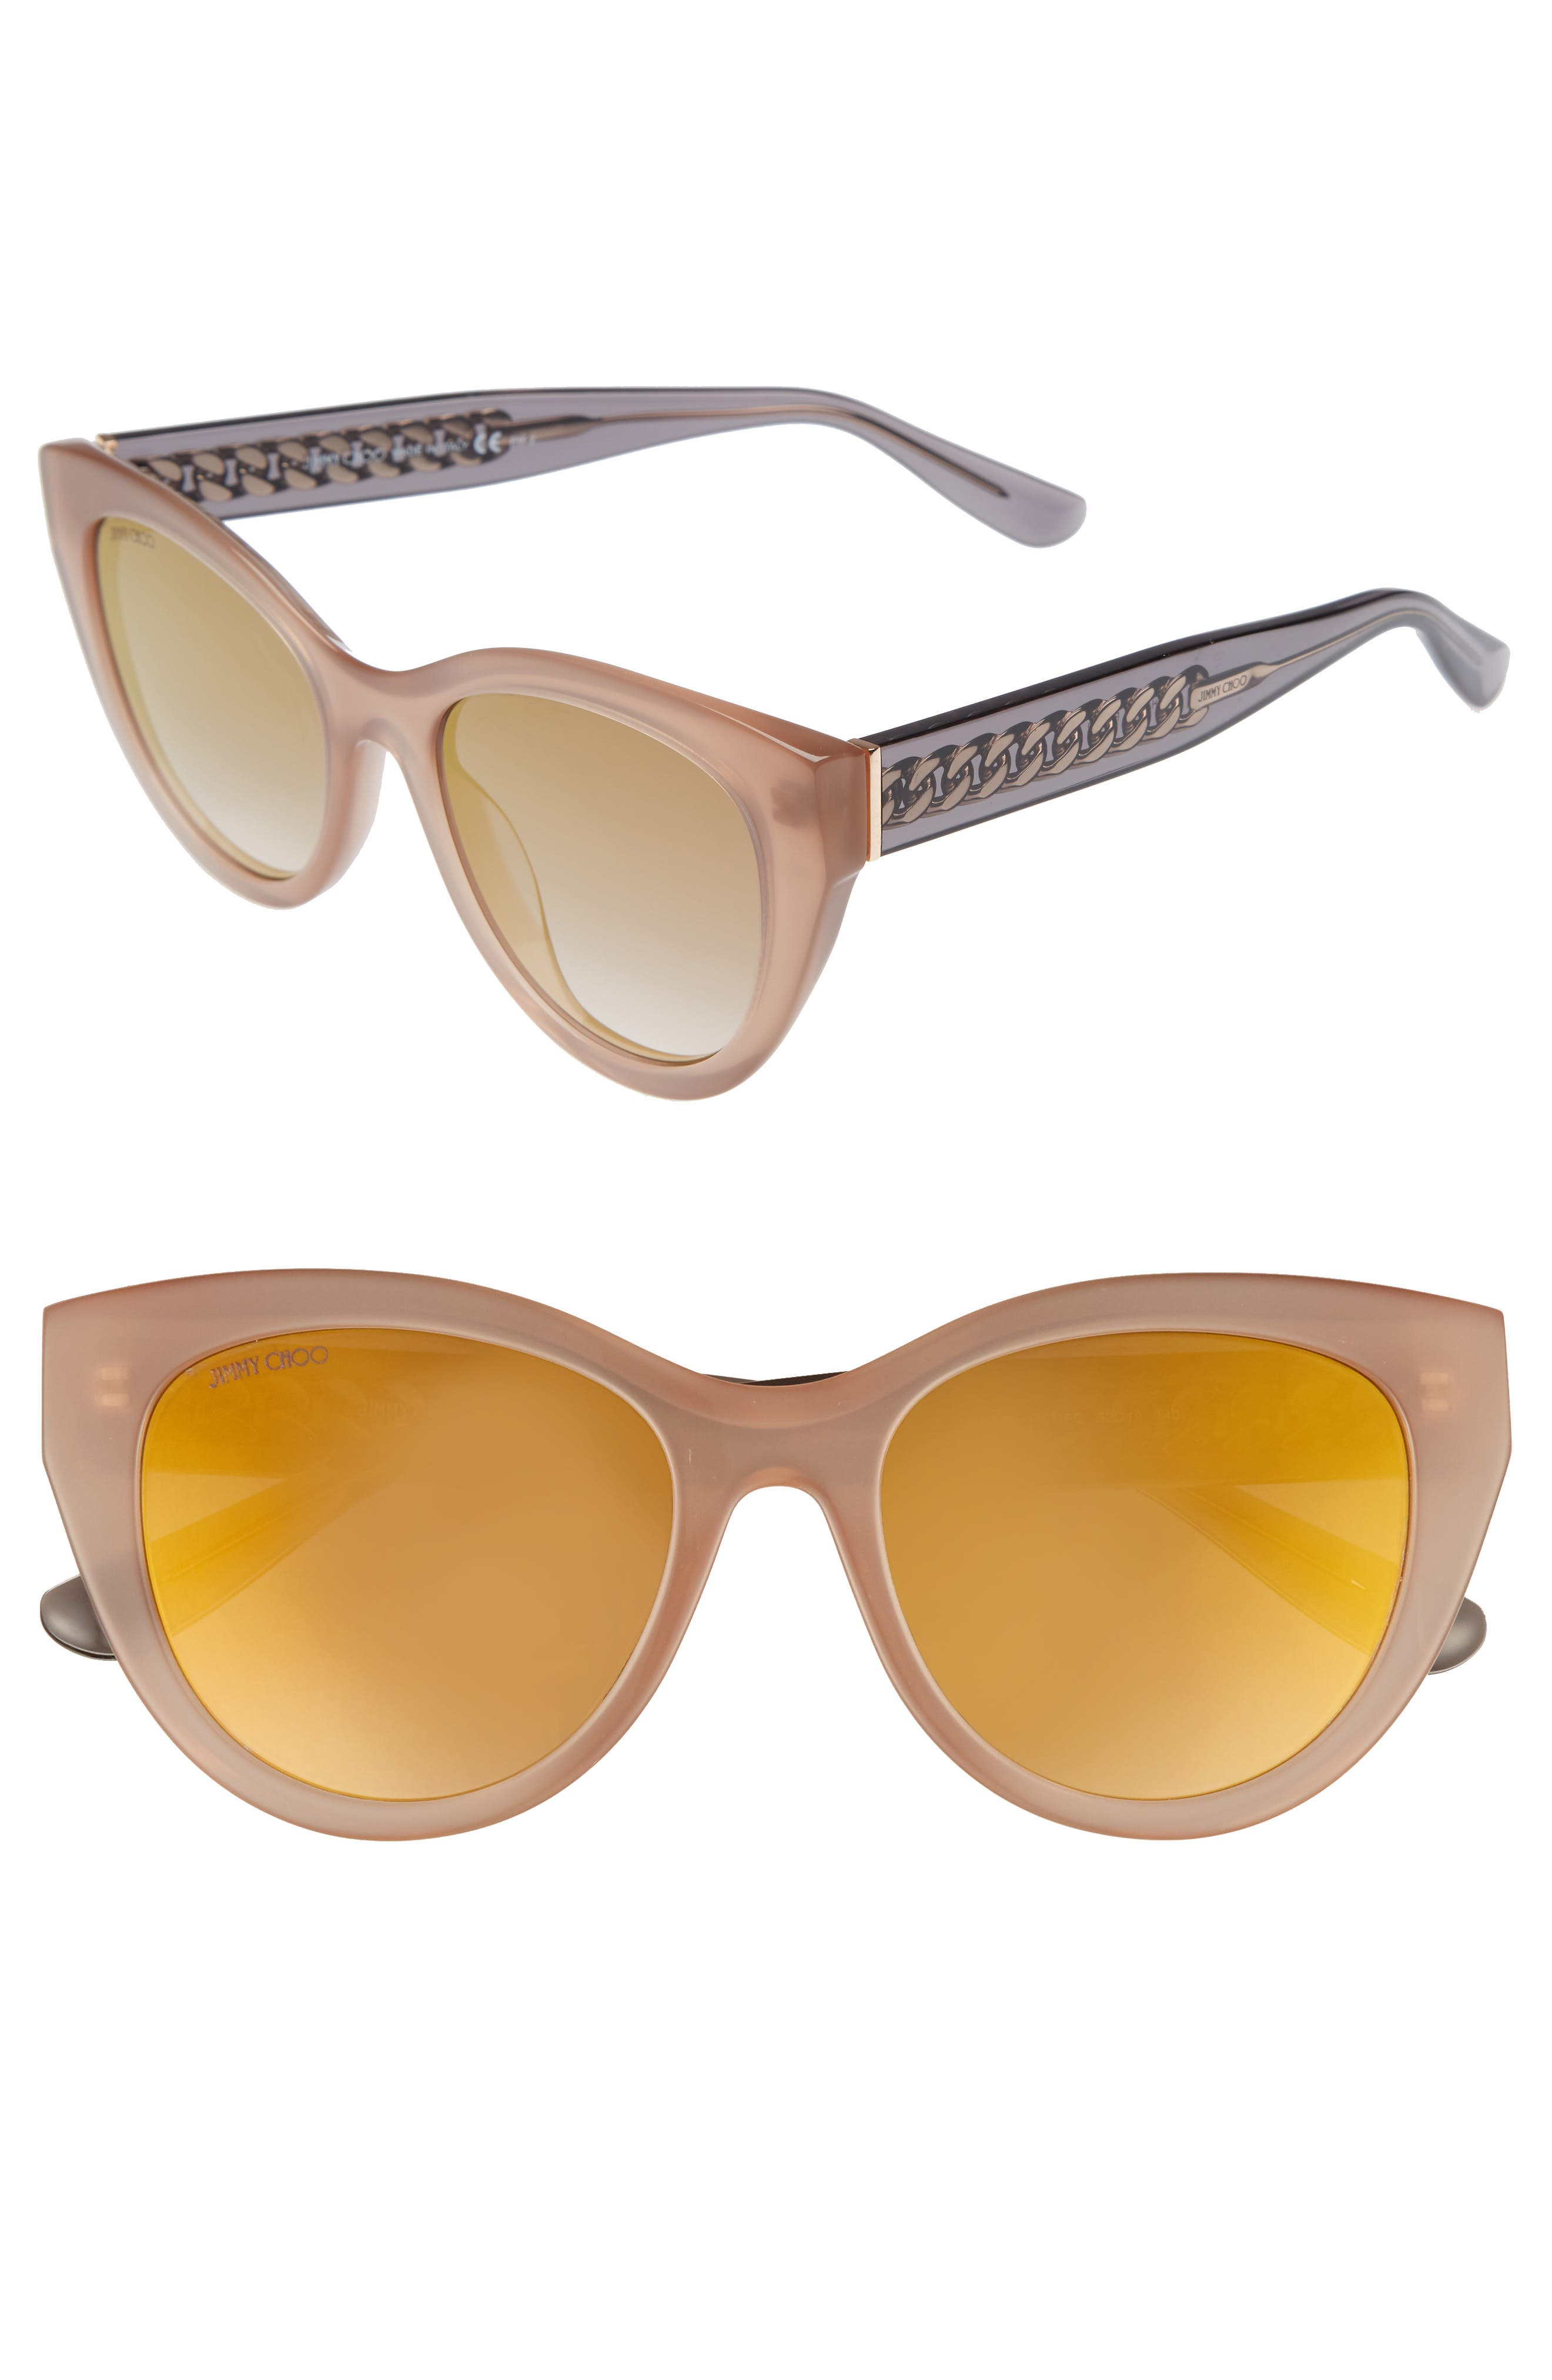 Chana 52mm Gradient Sunglasses,                         Main,                         color, Nude